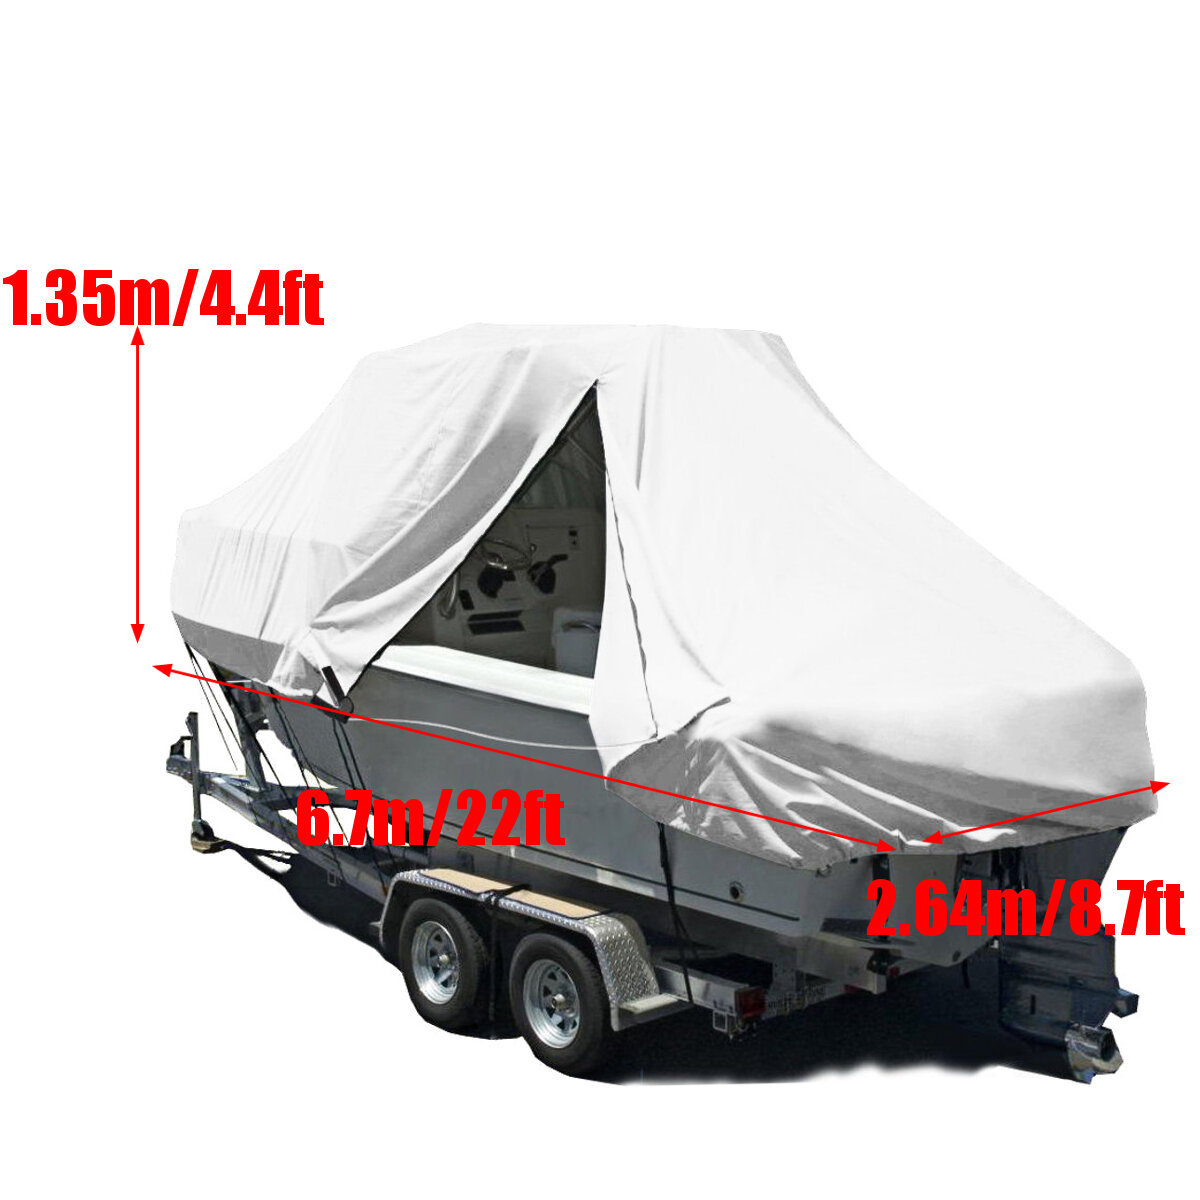 600D 22FT SpeedboatBoat Cover Dust Waterproof Protection Anti-UV Covers